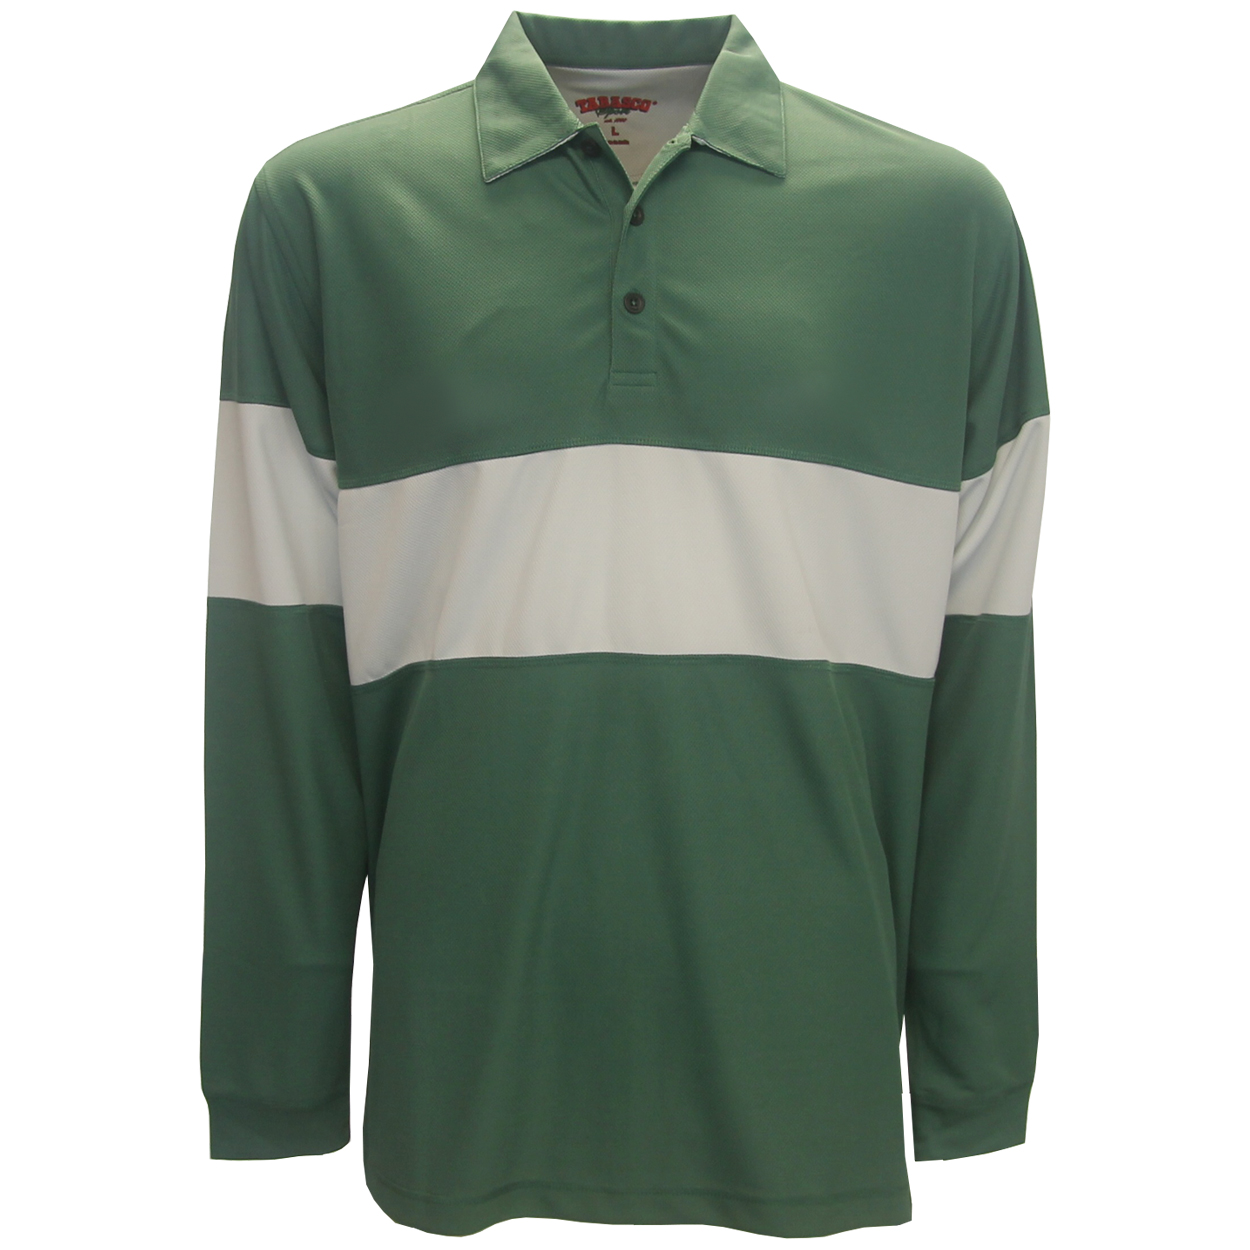 Tabasco golf thermal recycled long sleeve polo shirt for Name brand golf shirts